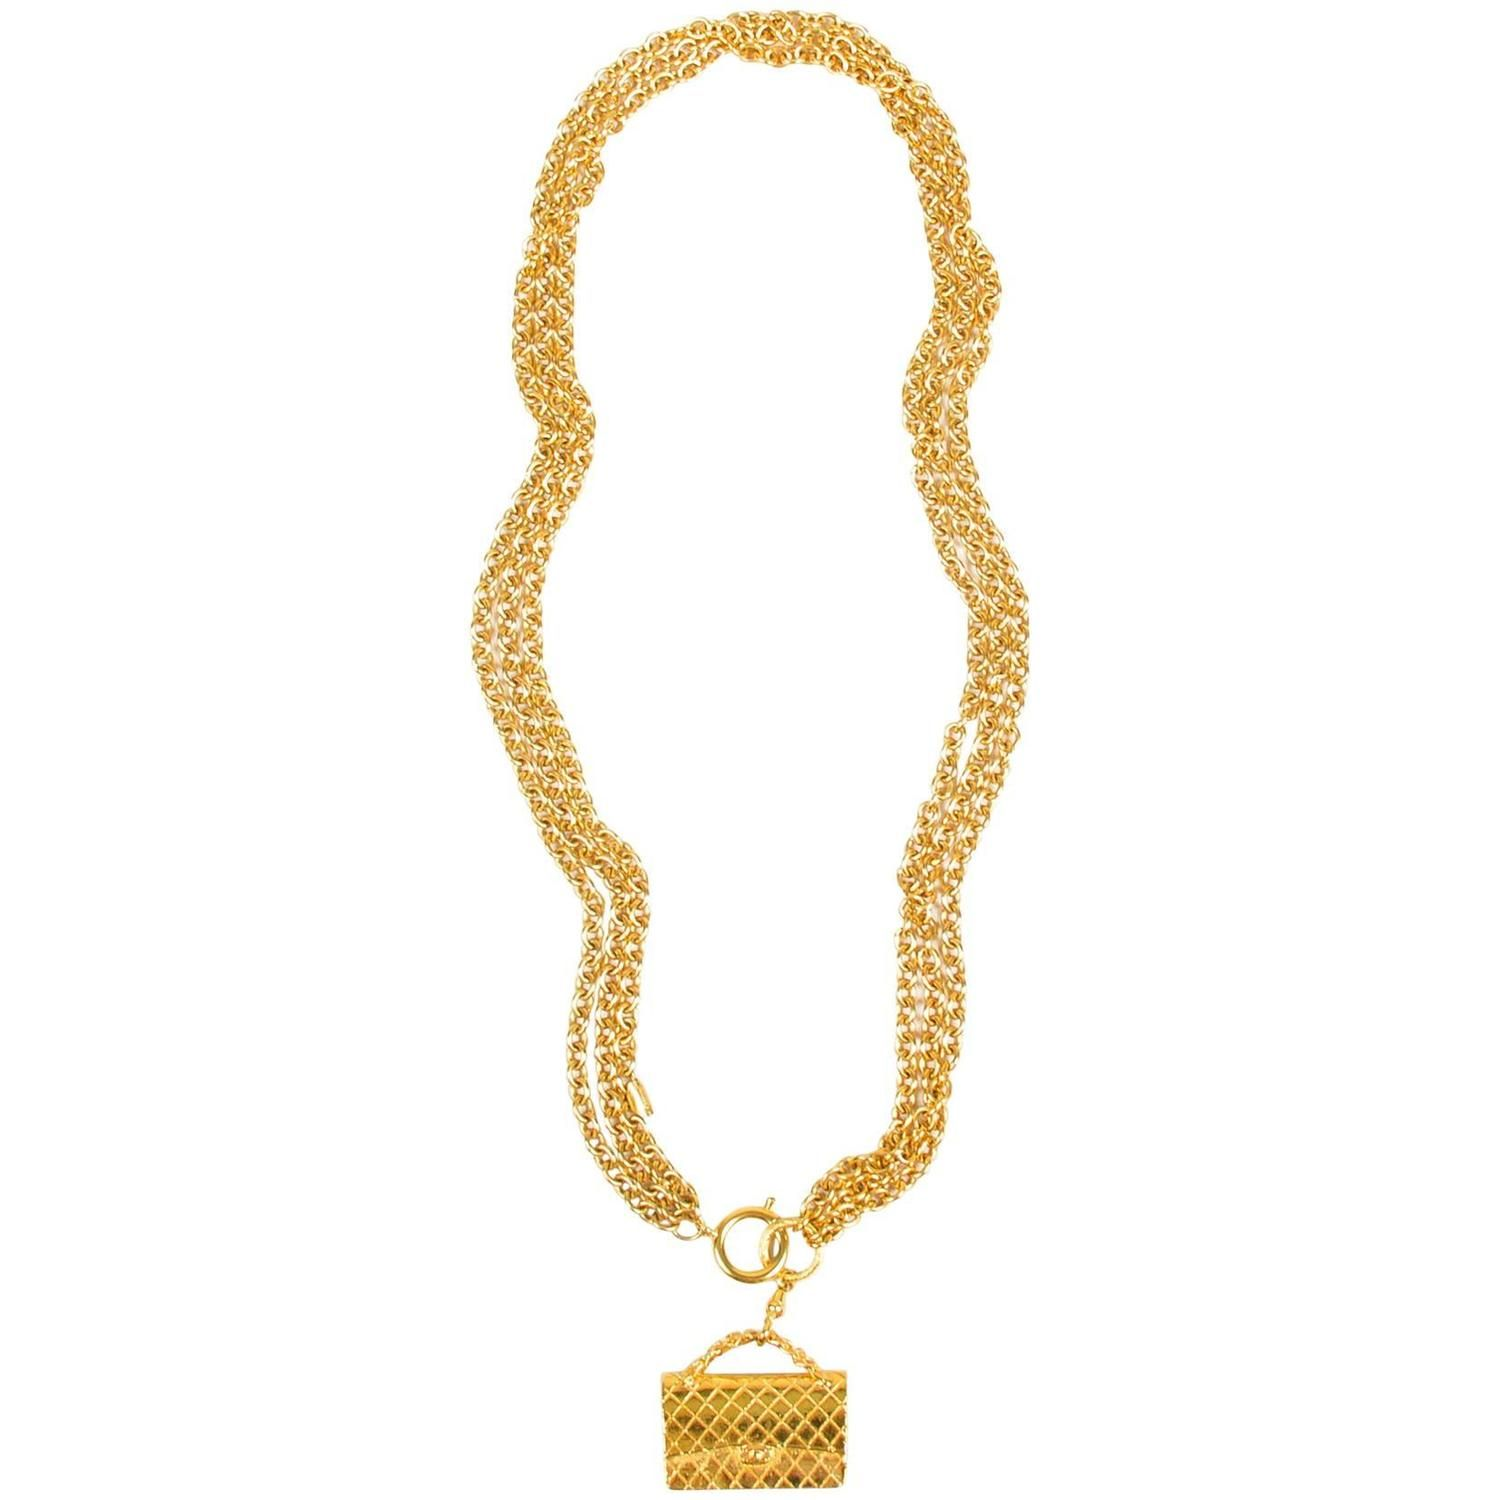 chain eyeglass cc holder chanel chains c gold